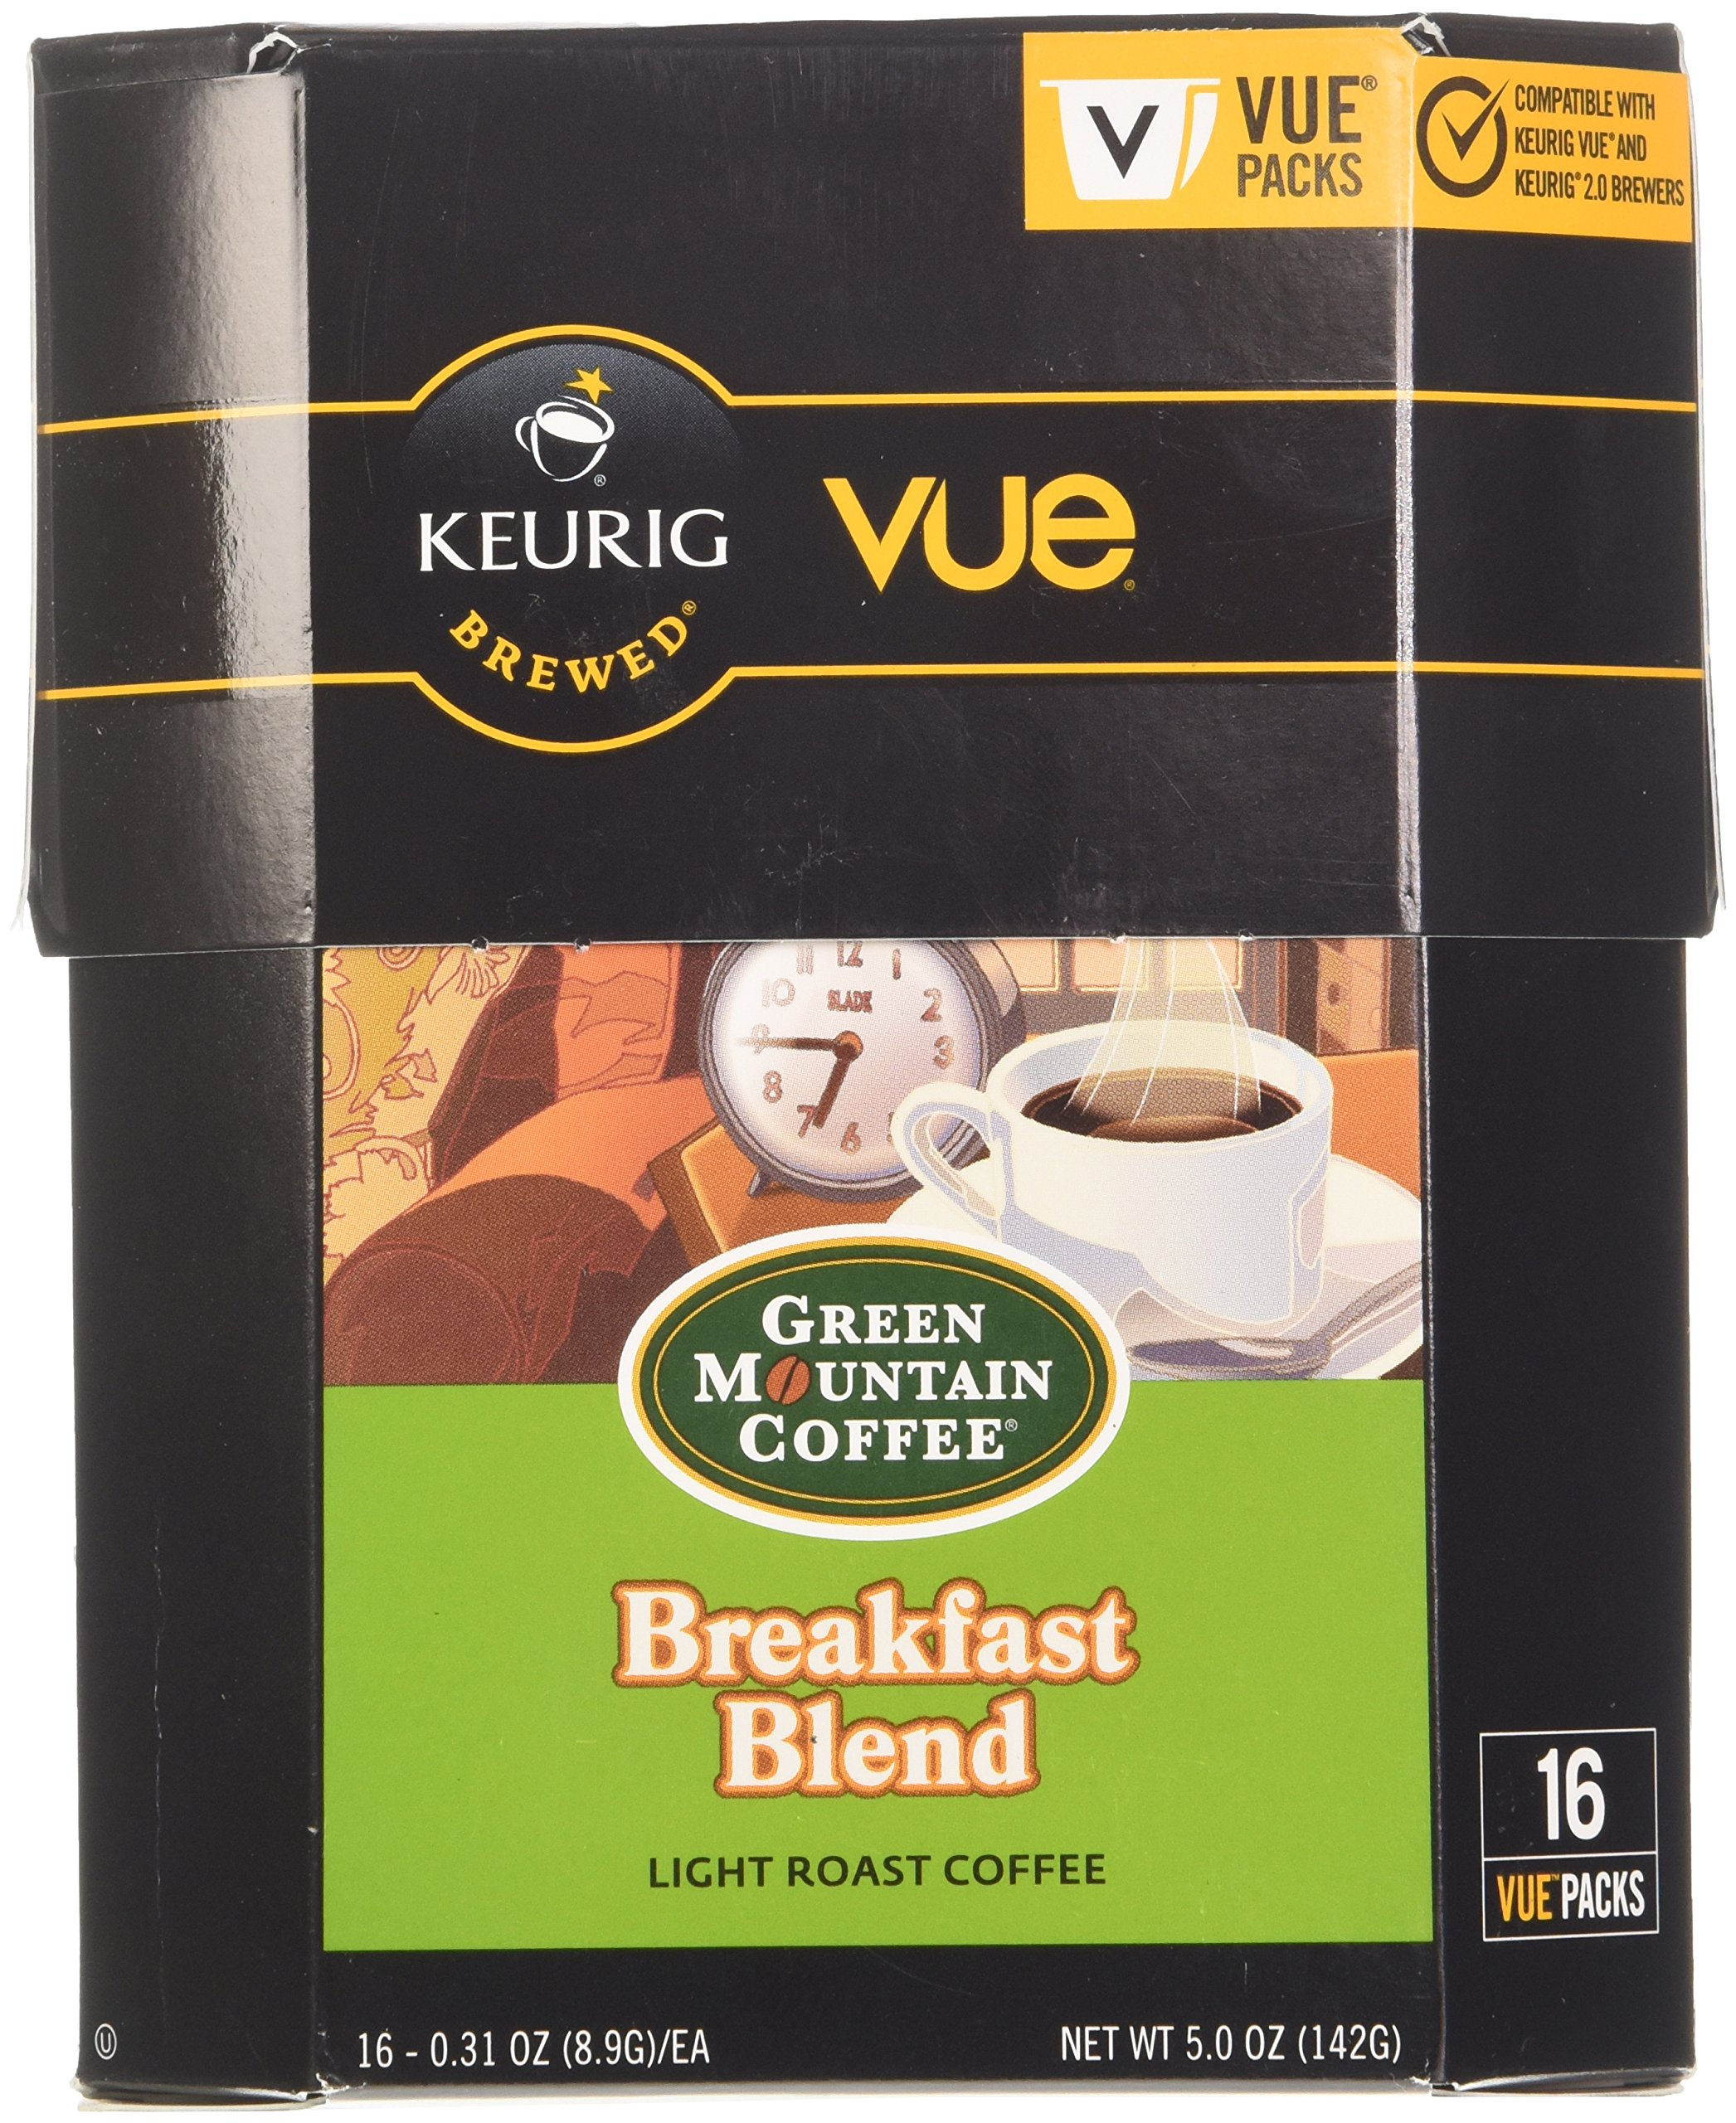 Green Mountain Coffee Breakfast Blend, Vue Cup Portion Pack for Keurig Vue Brewing Systems, 16 Count by Green Mountain Coffee Roasters (Image #4)